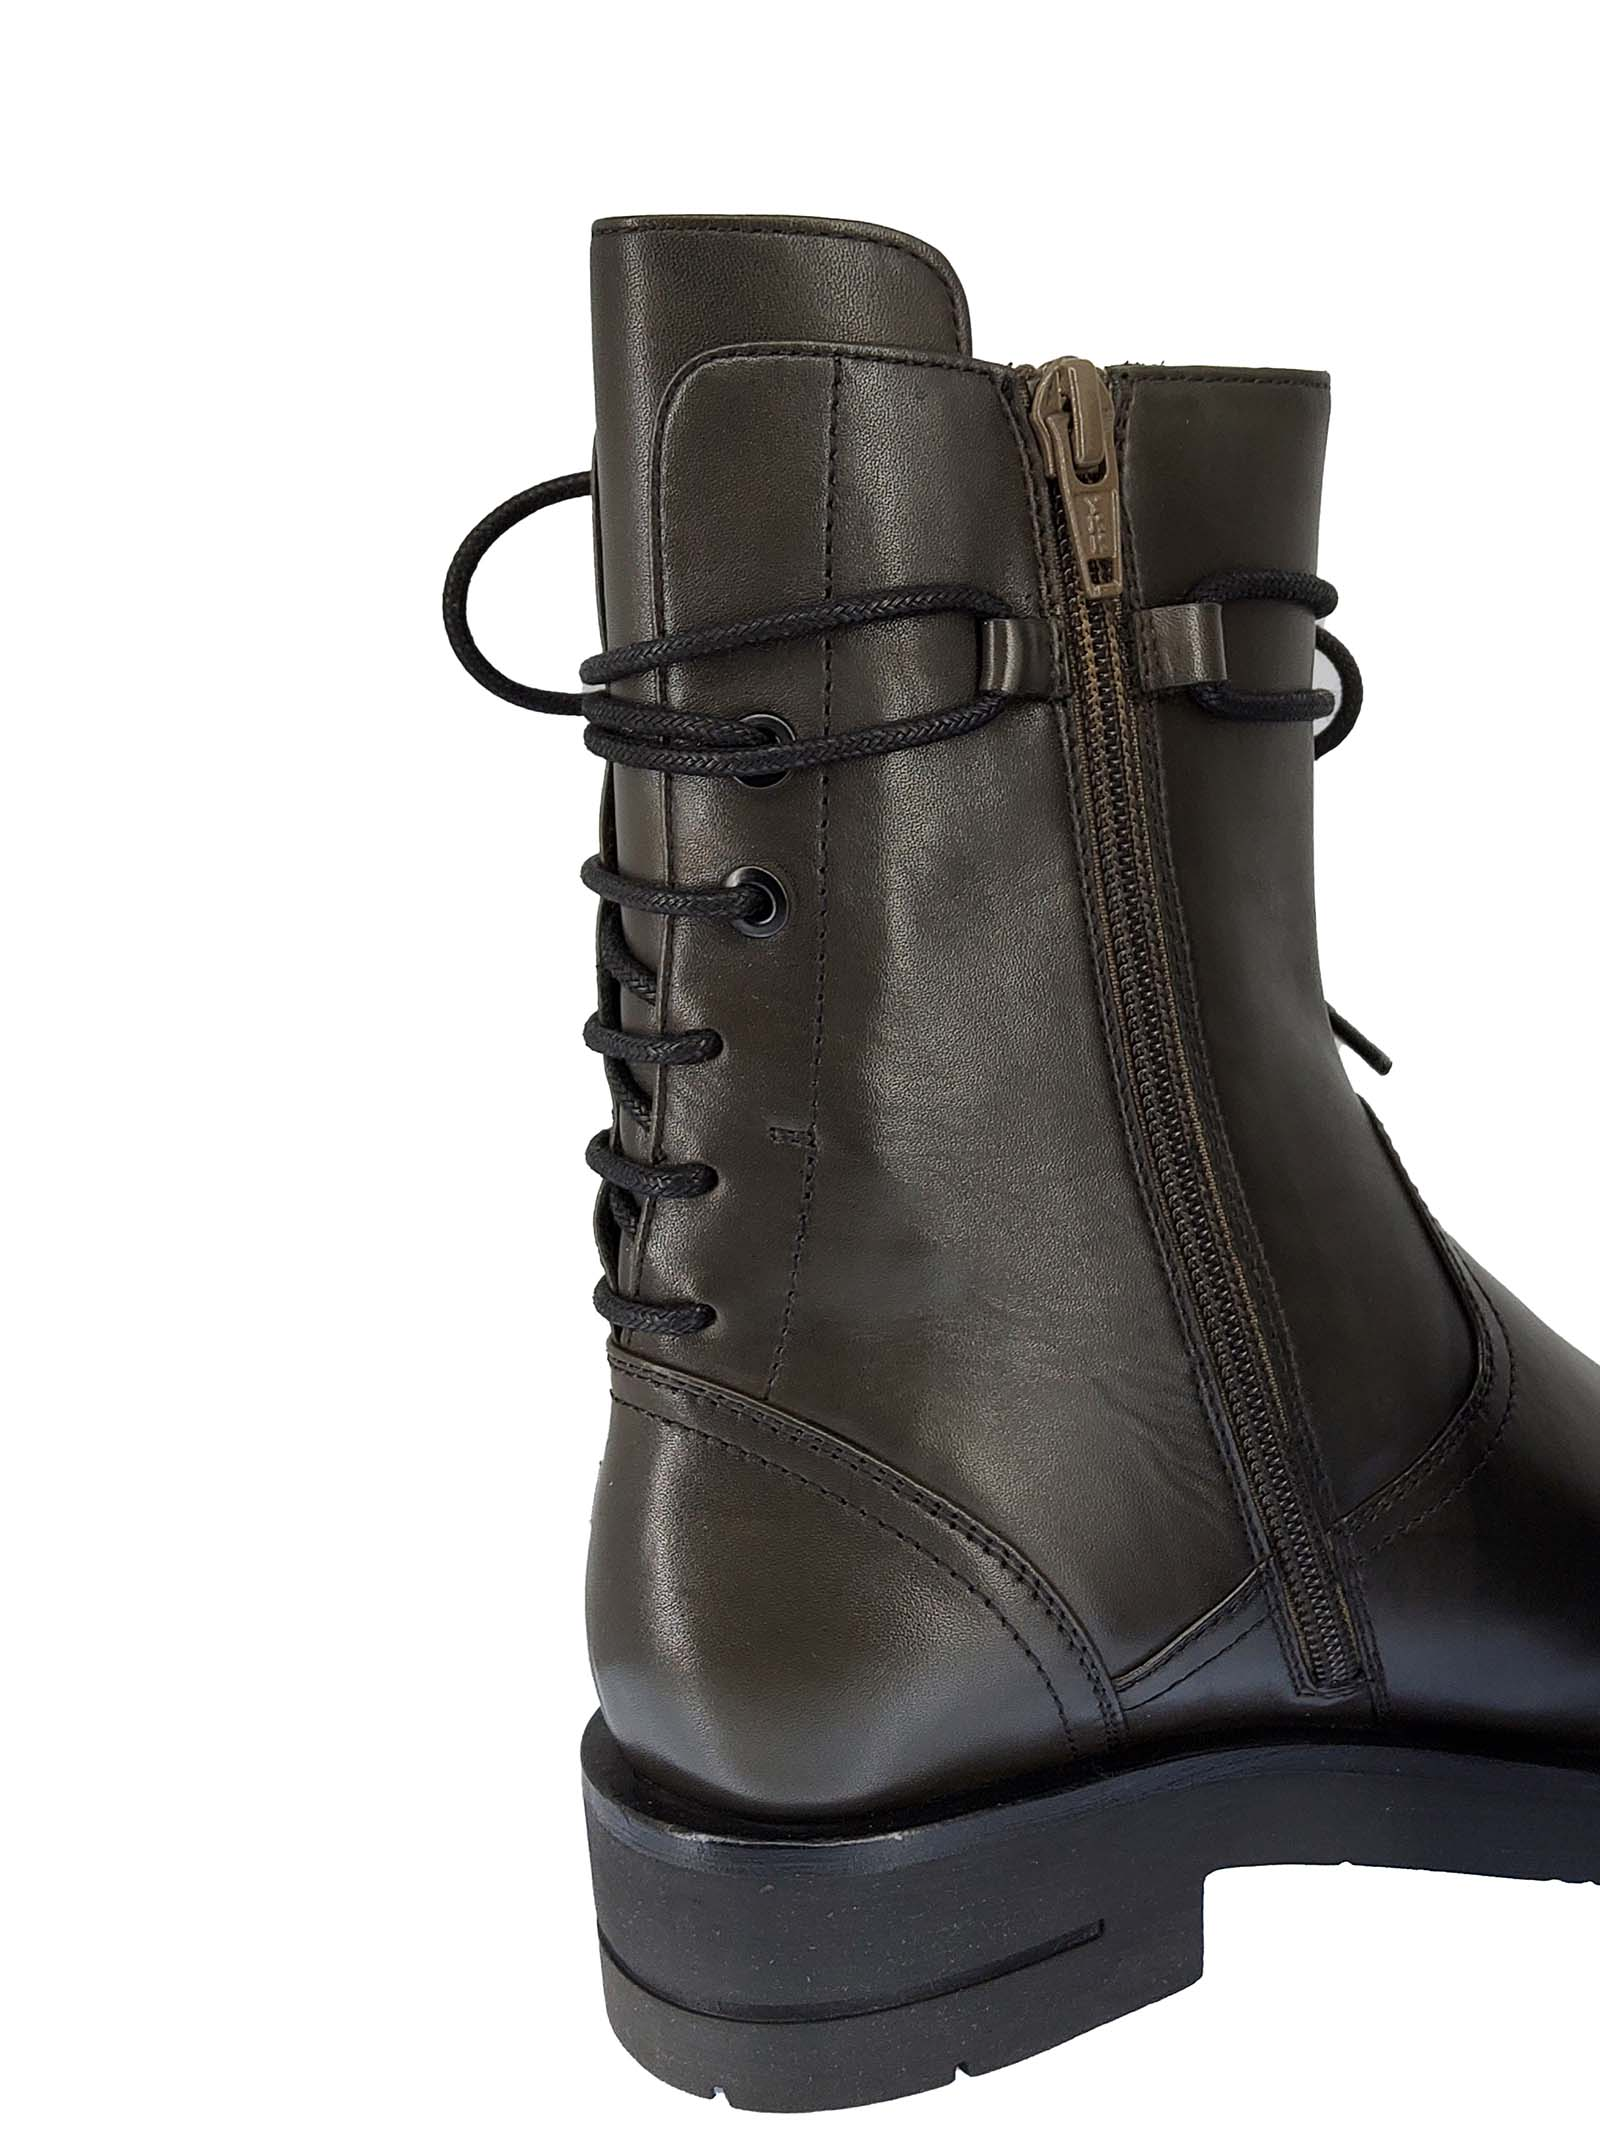 Women's Shoes Gil Lacy Amphibious Boots in Green Leather with Rear Lacing Side Zip and Rubber Sole Bruno Premi   Ankle Boots   BC0404X005